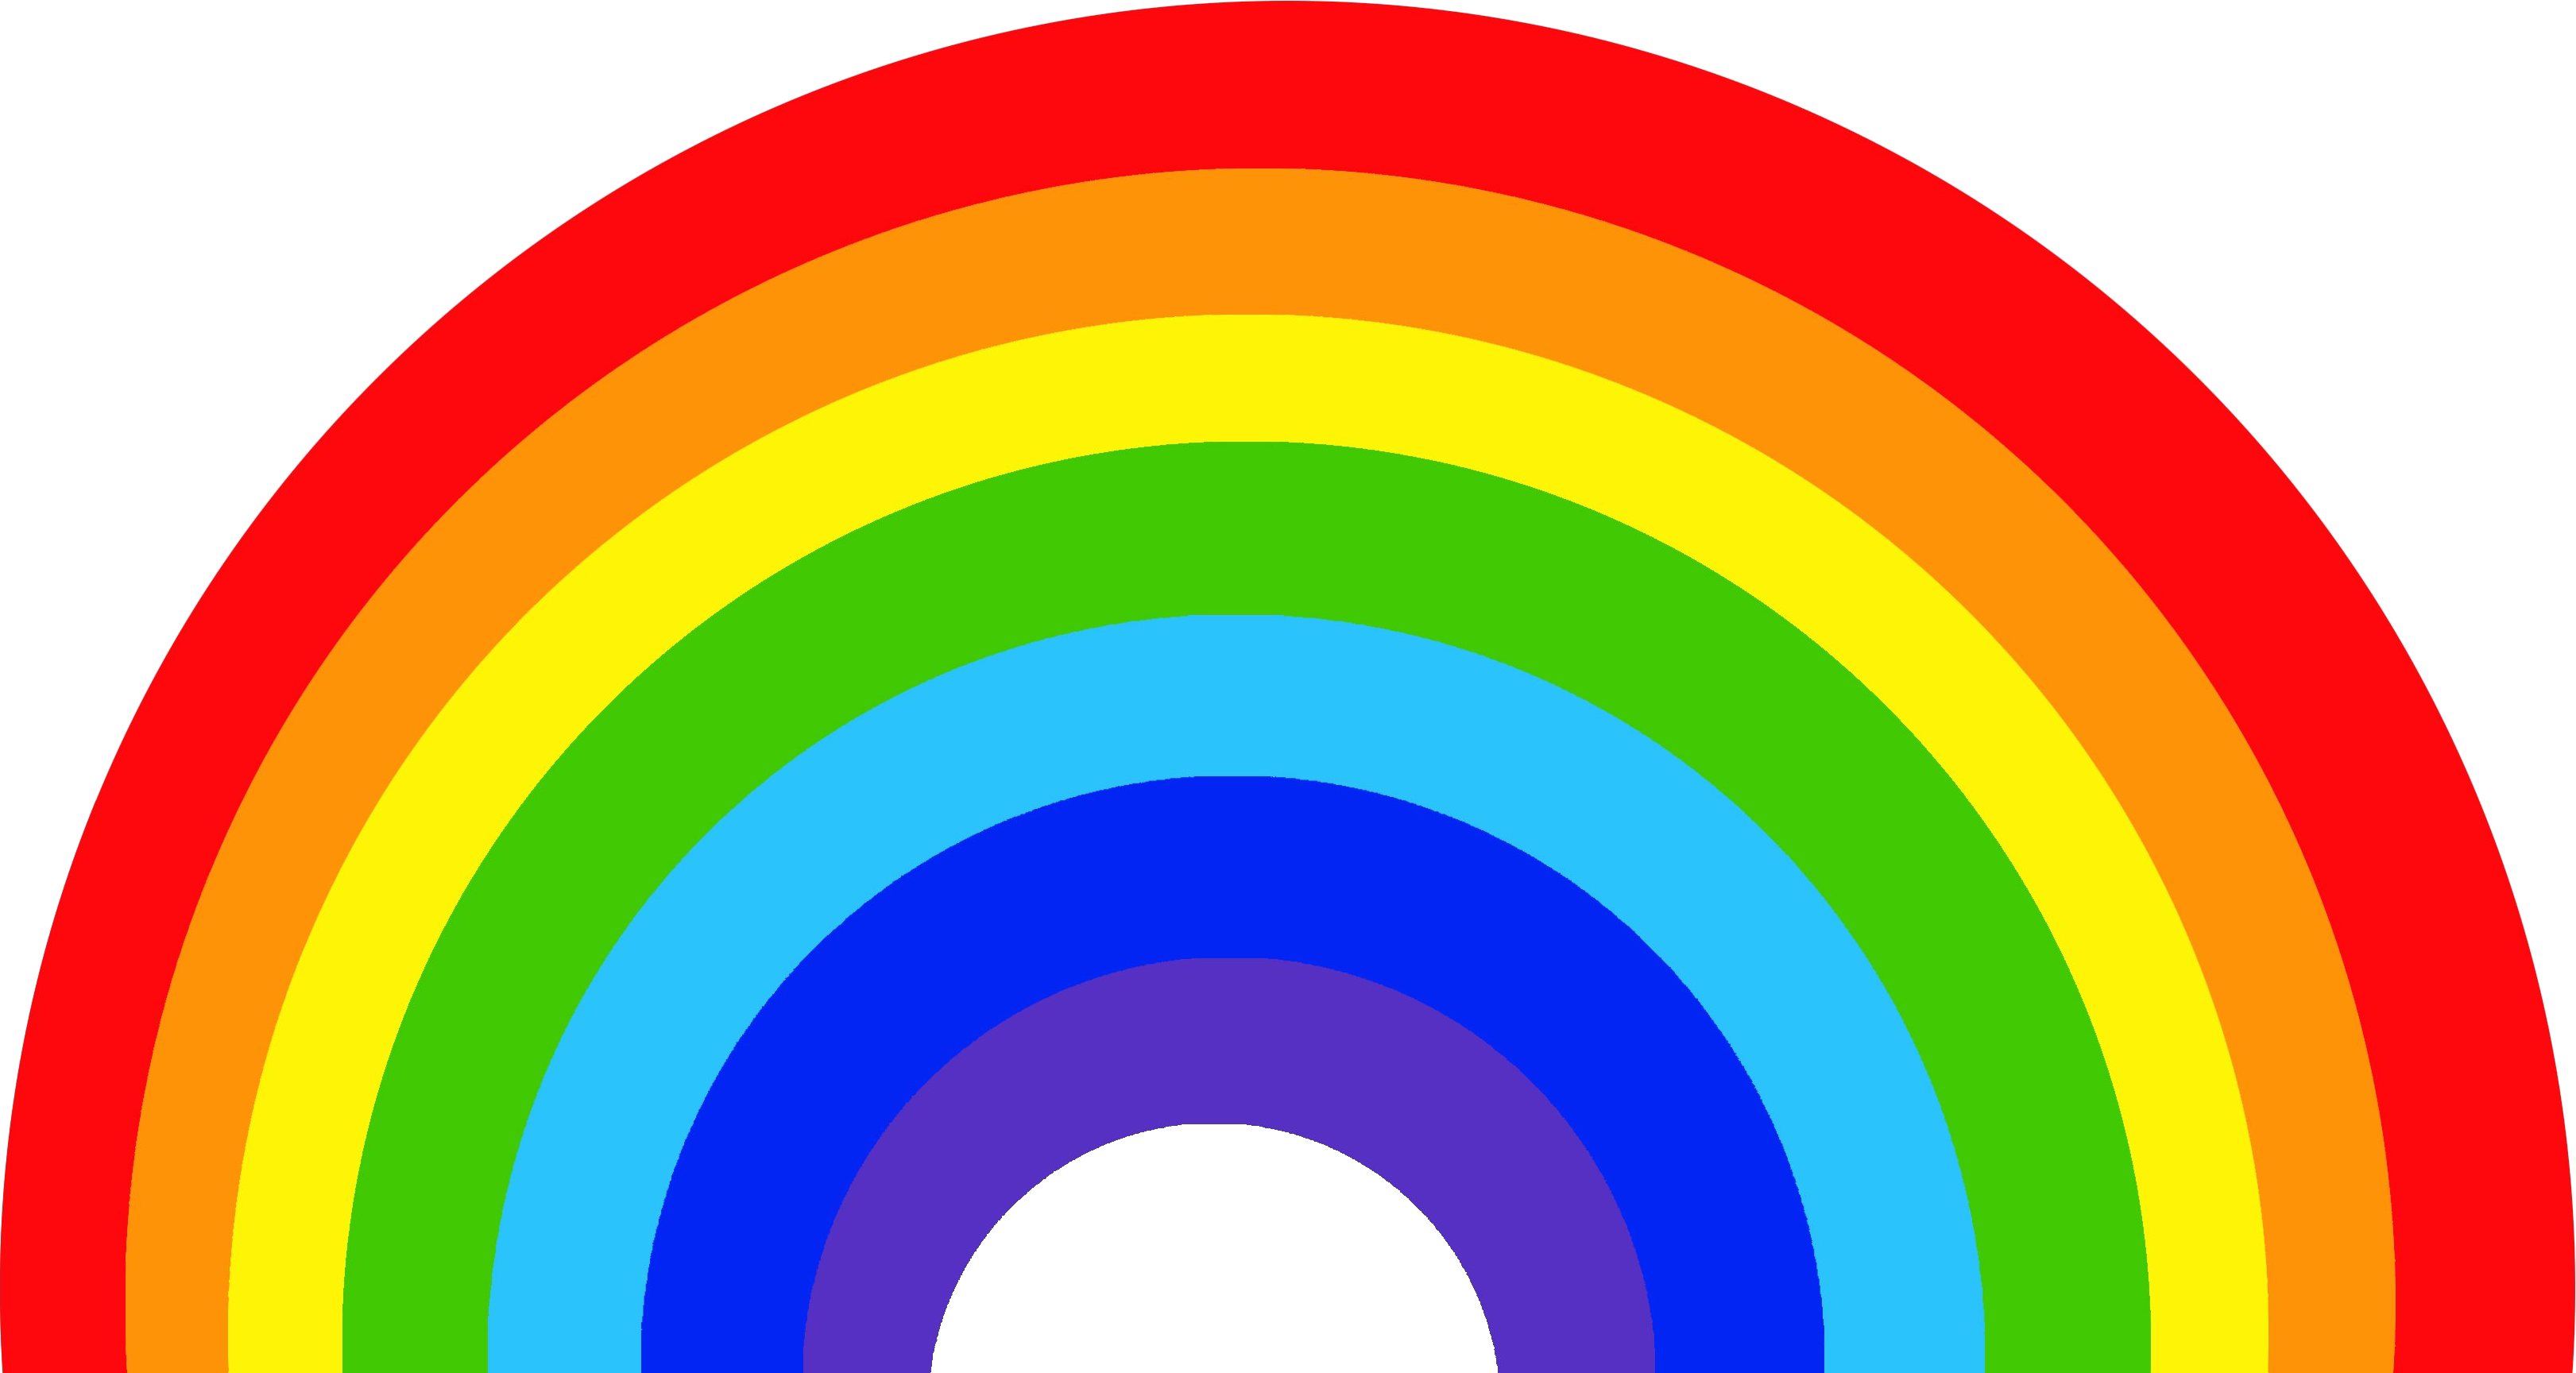 Large Rainbow Png image #7008